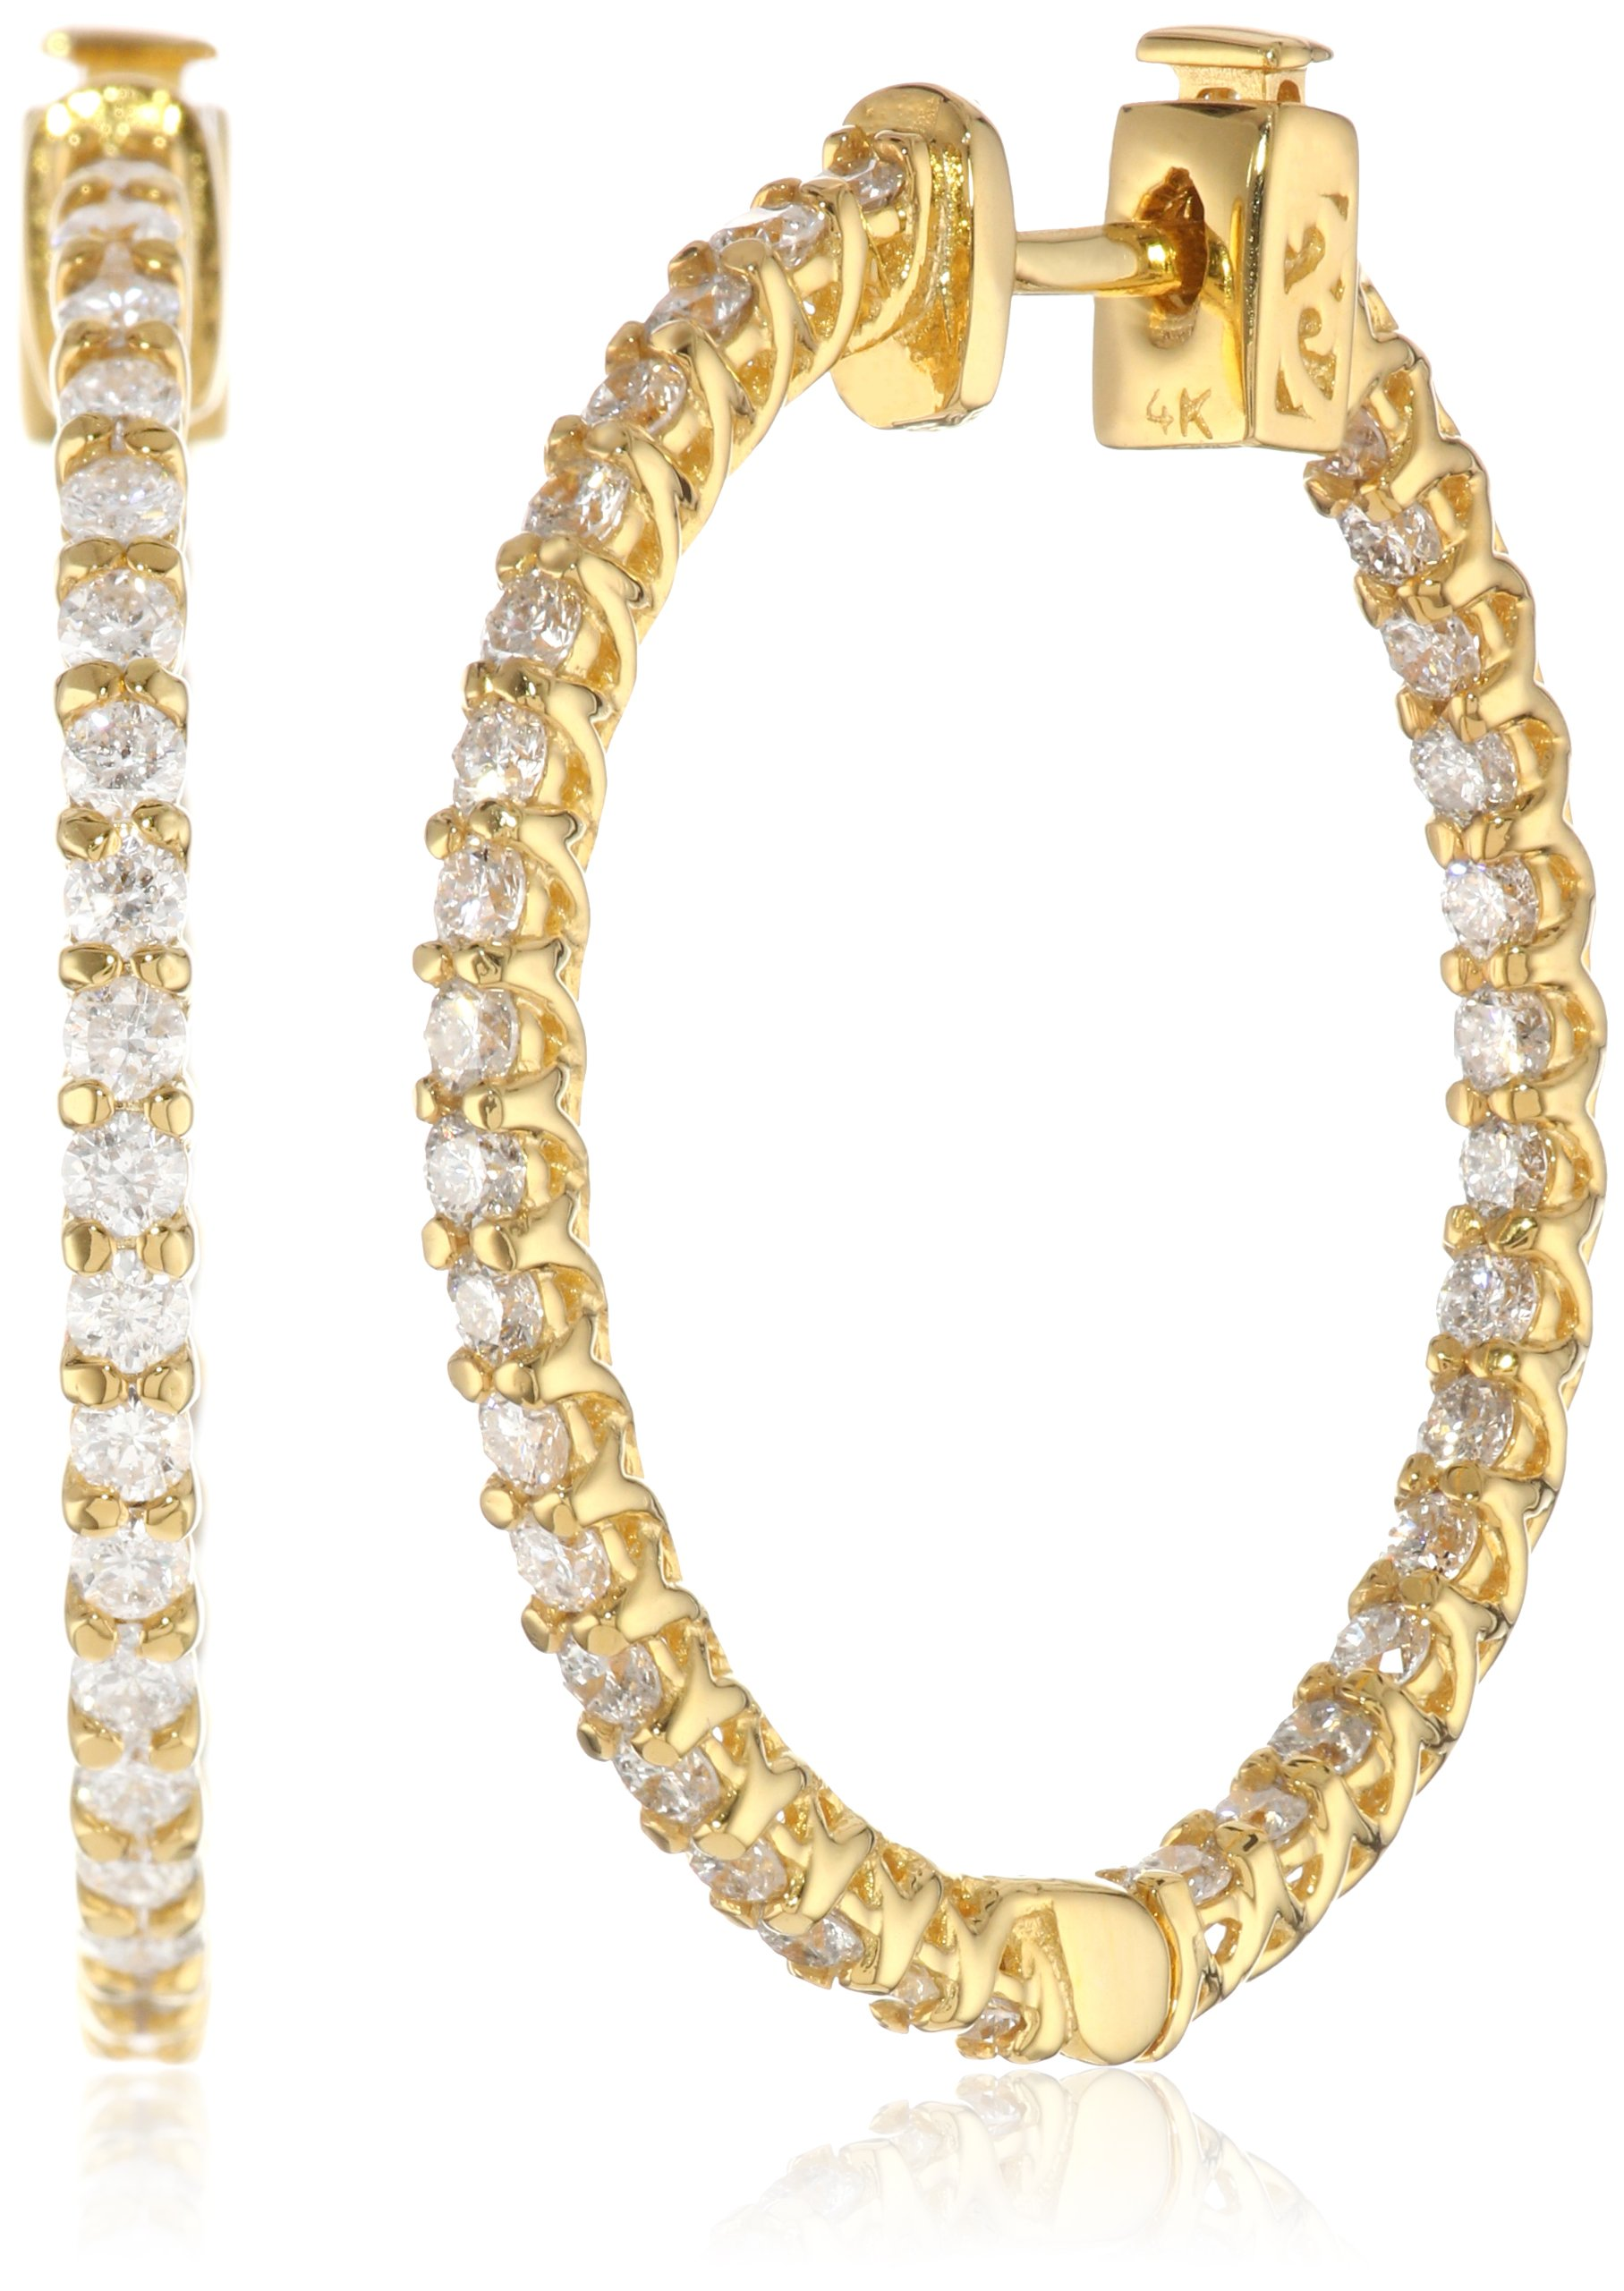 14k Yellow Gold Diamond Inside and Outside Hoops, 2 cttw (H-I Color, I1Clarity)